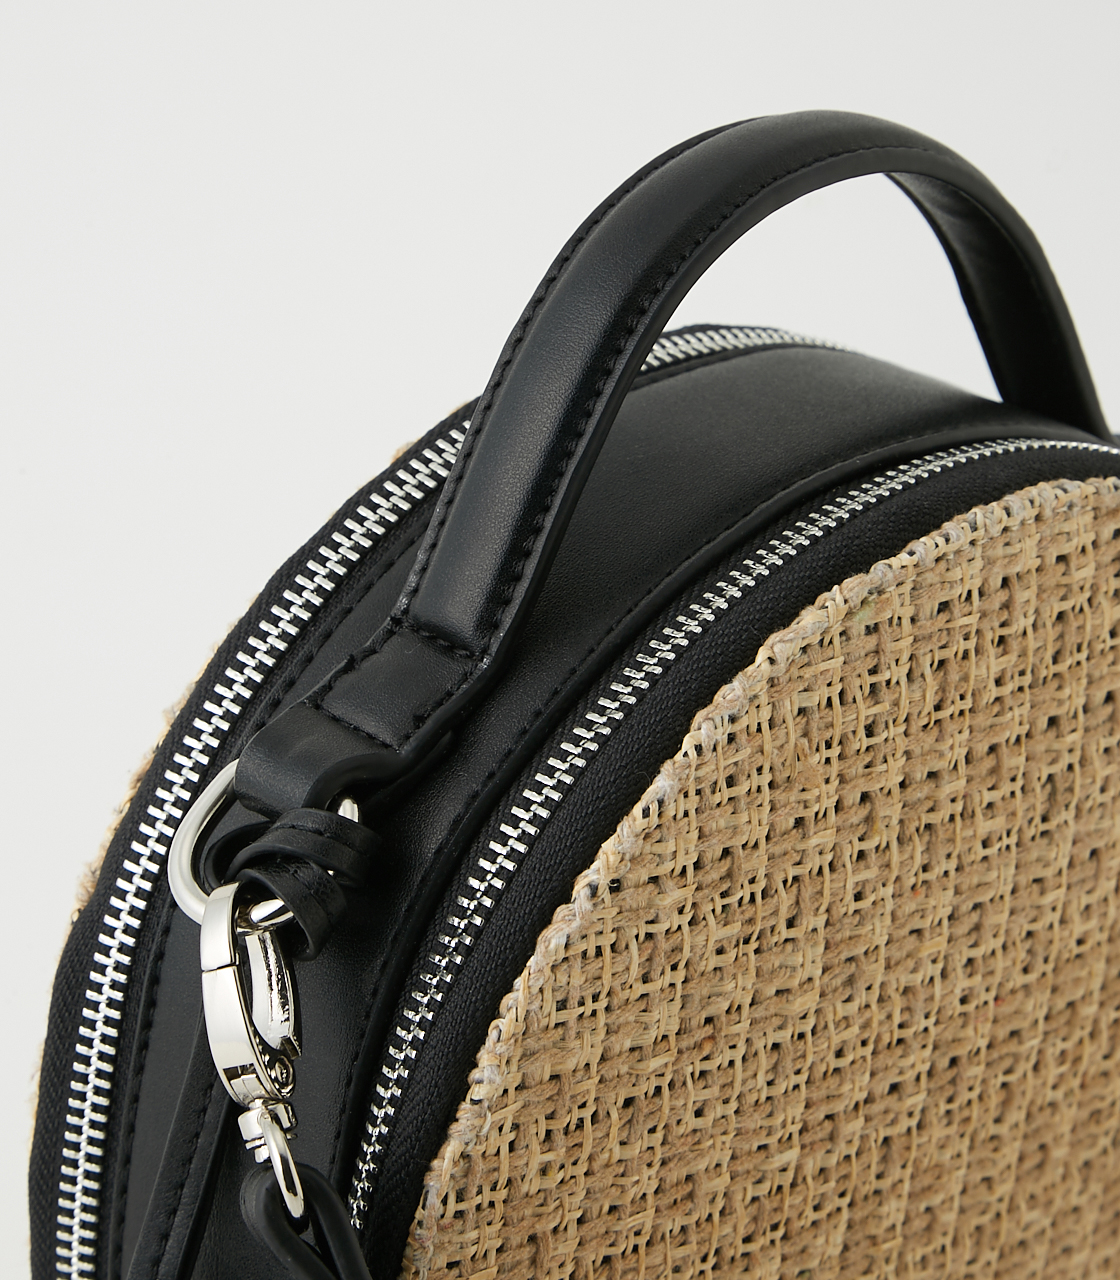 CIRCLE STRAWMESH SHOULDER BAG 詳細画像 柄BLK 5